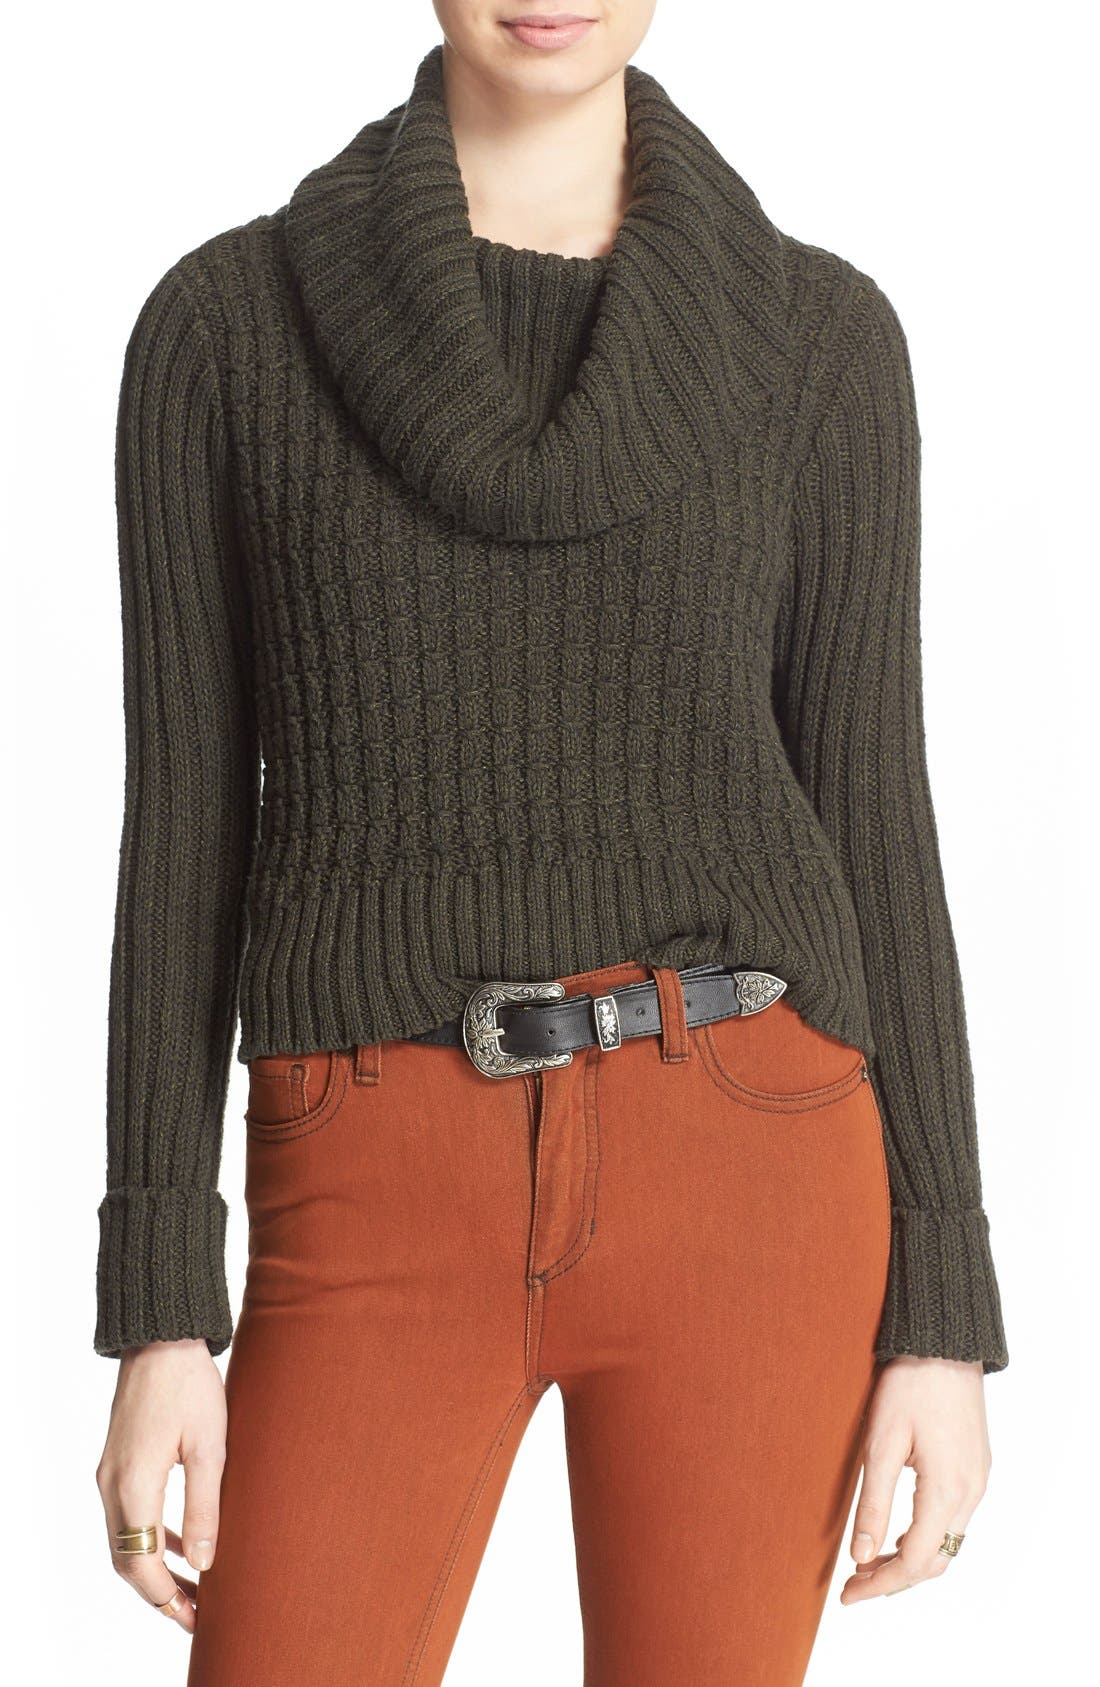 Alternate Image 1 Selected - Free People 'Twisted Cable' Turtleneck Sweater